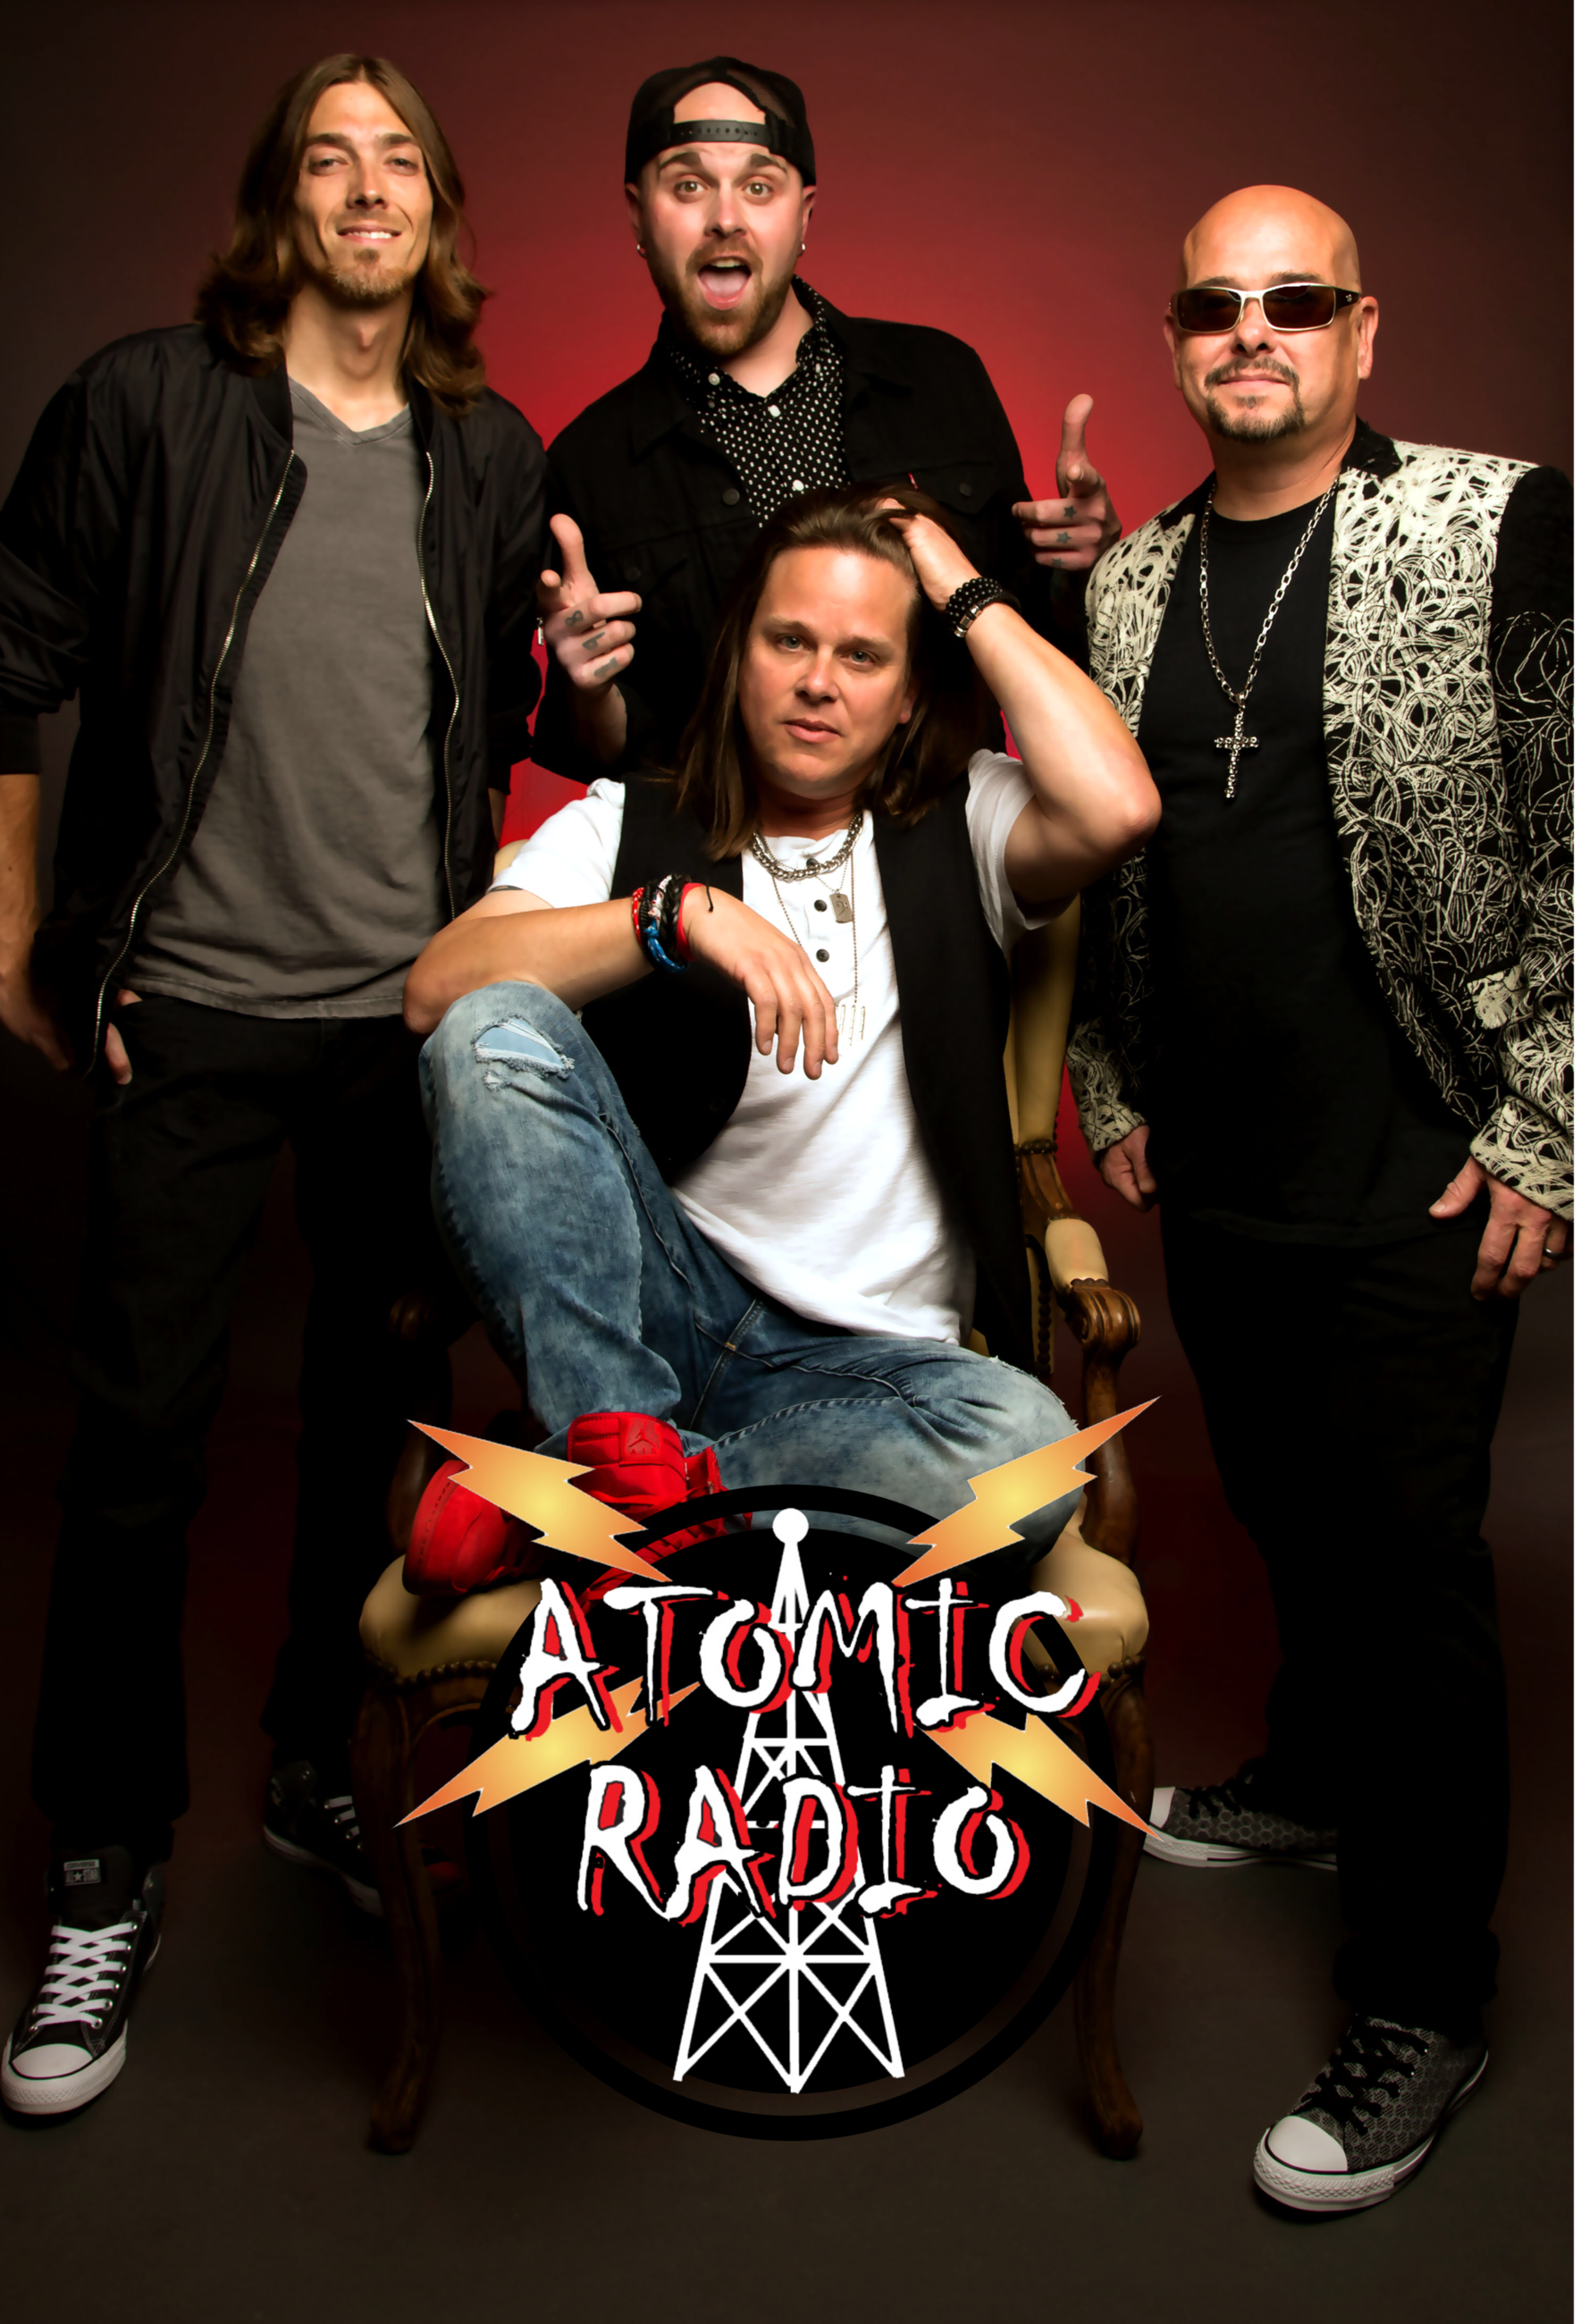 Atomic Radio Band Photo